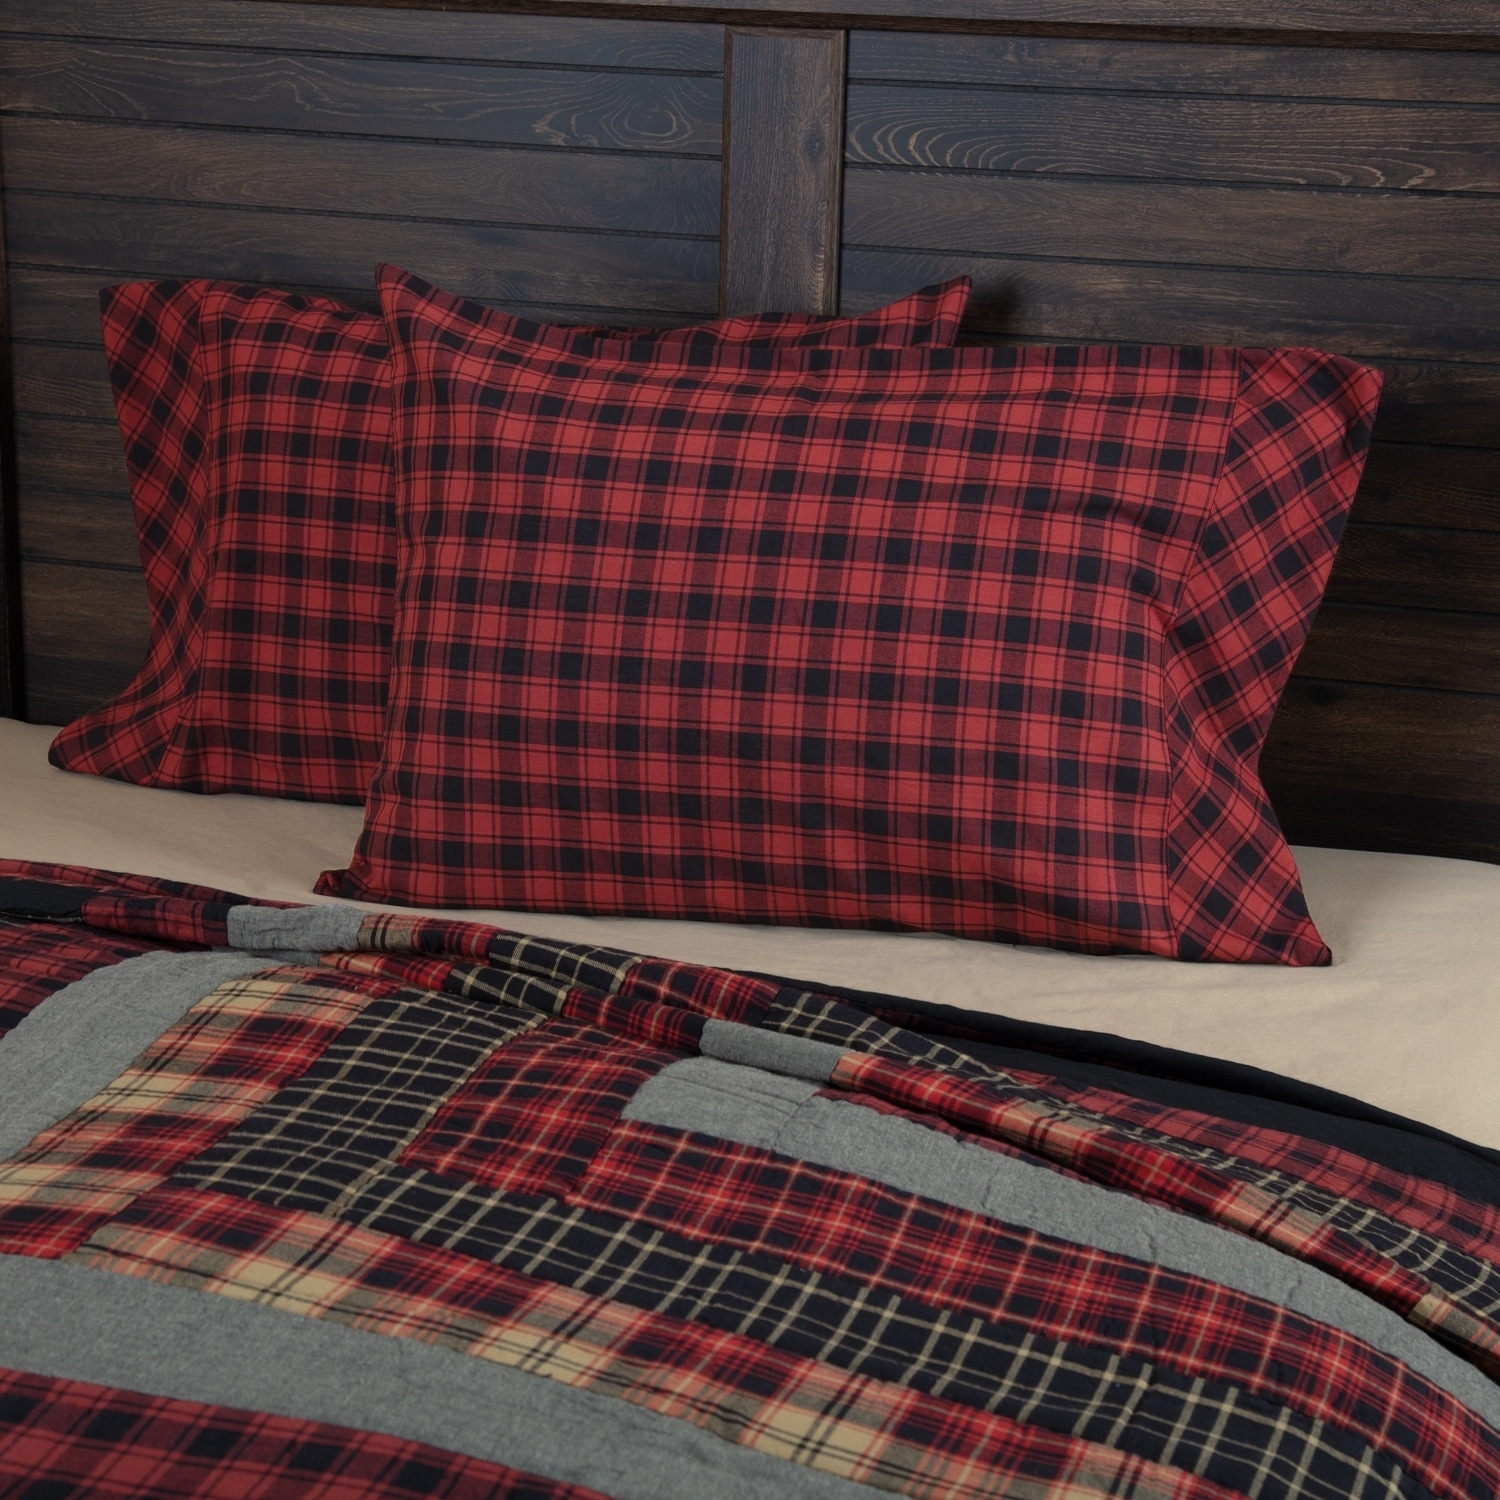 COUNTRY CABIN LODGE ANDES PILLOW COVER RED BLACK PLAID QUILTED Standard SHAM